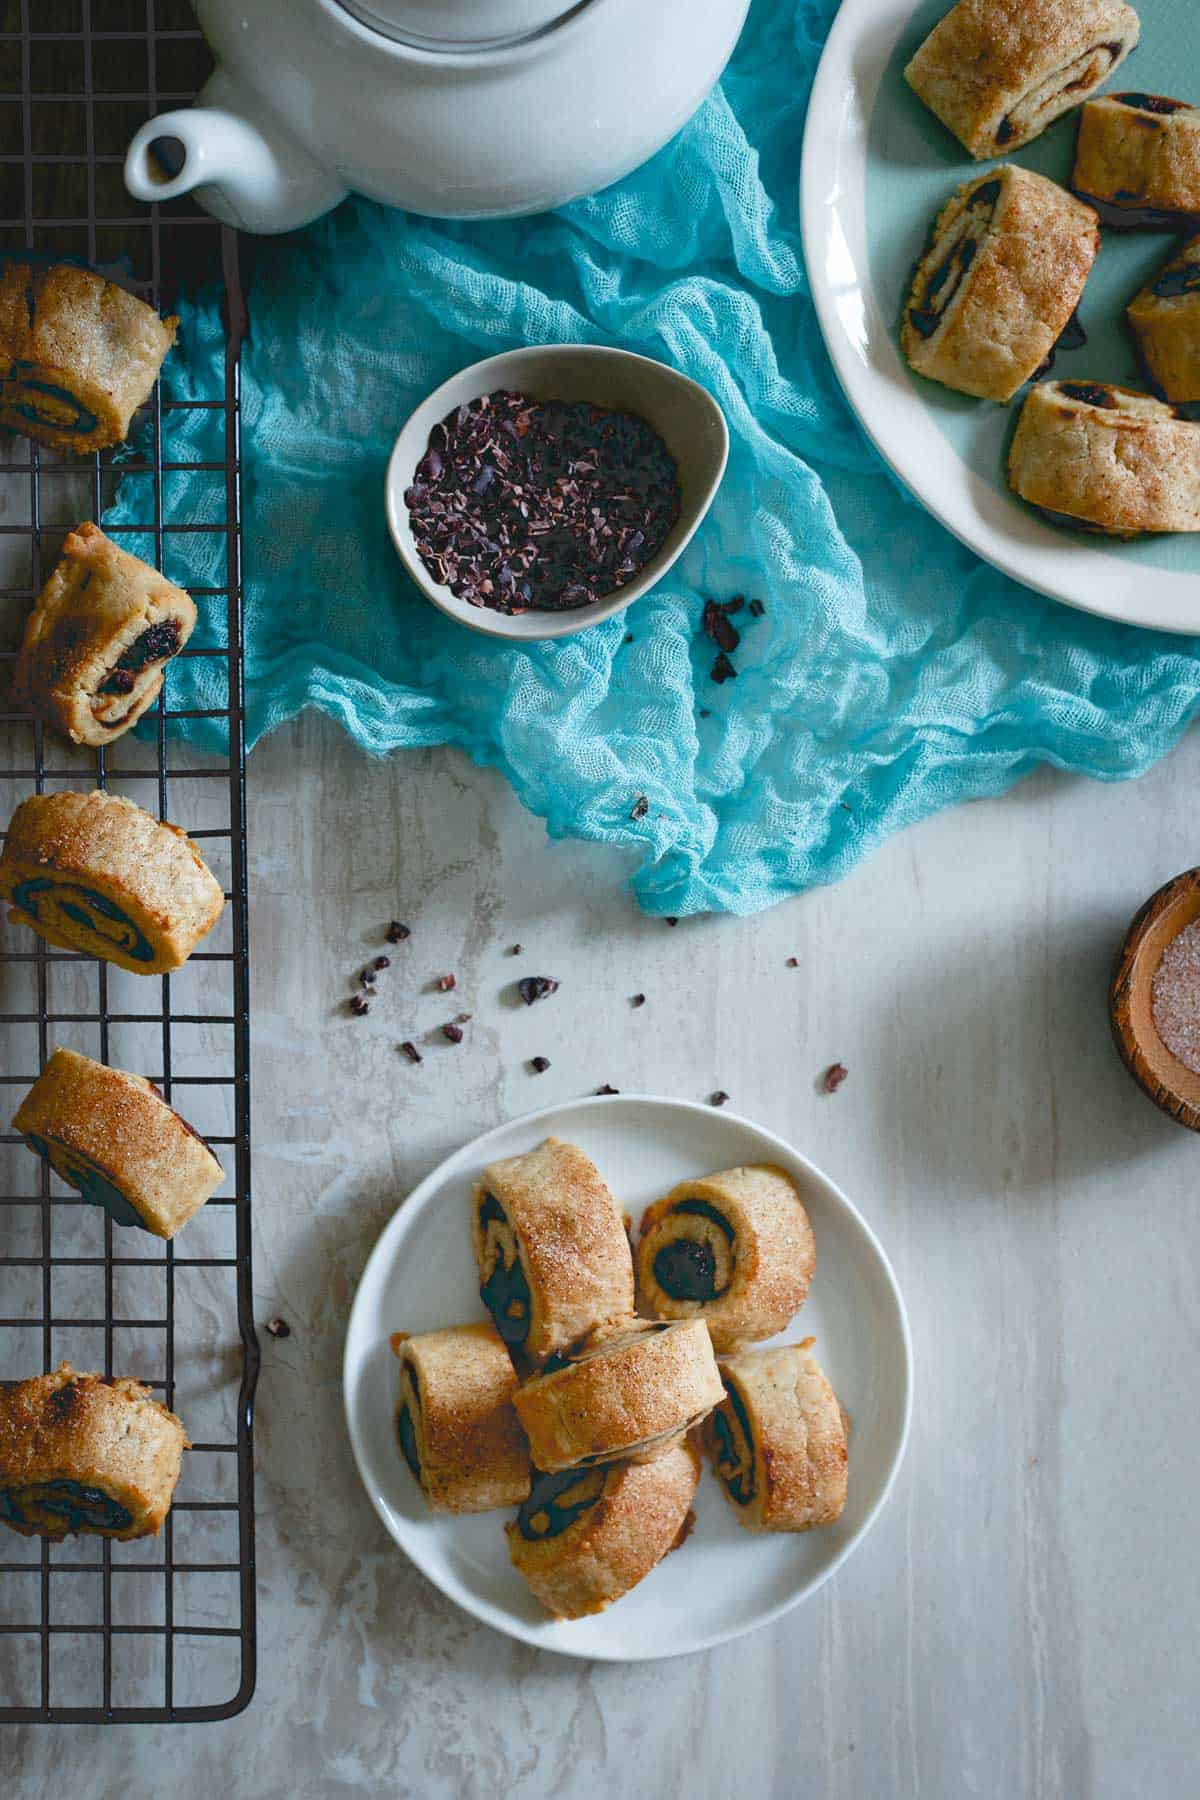 Rugelach make a great addition to your holiday baking, especially this seasonal apple butter and cacao nib version!